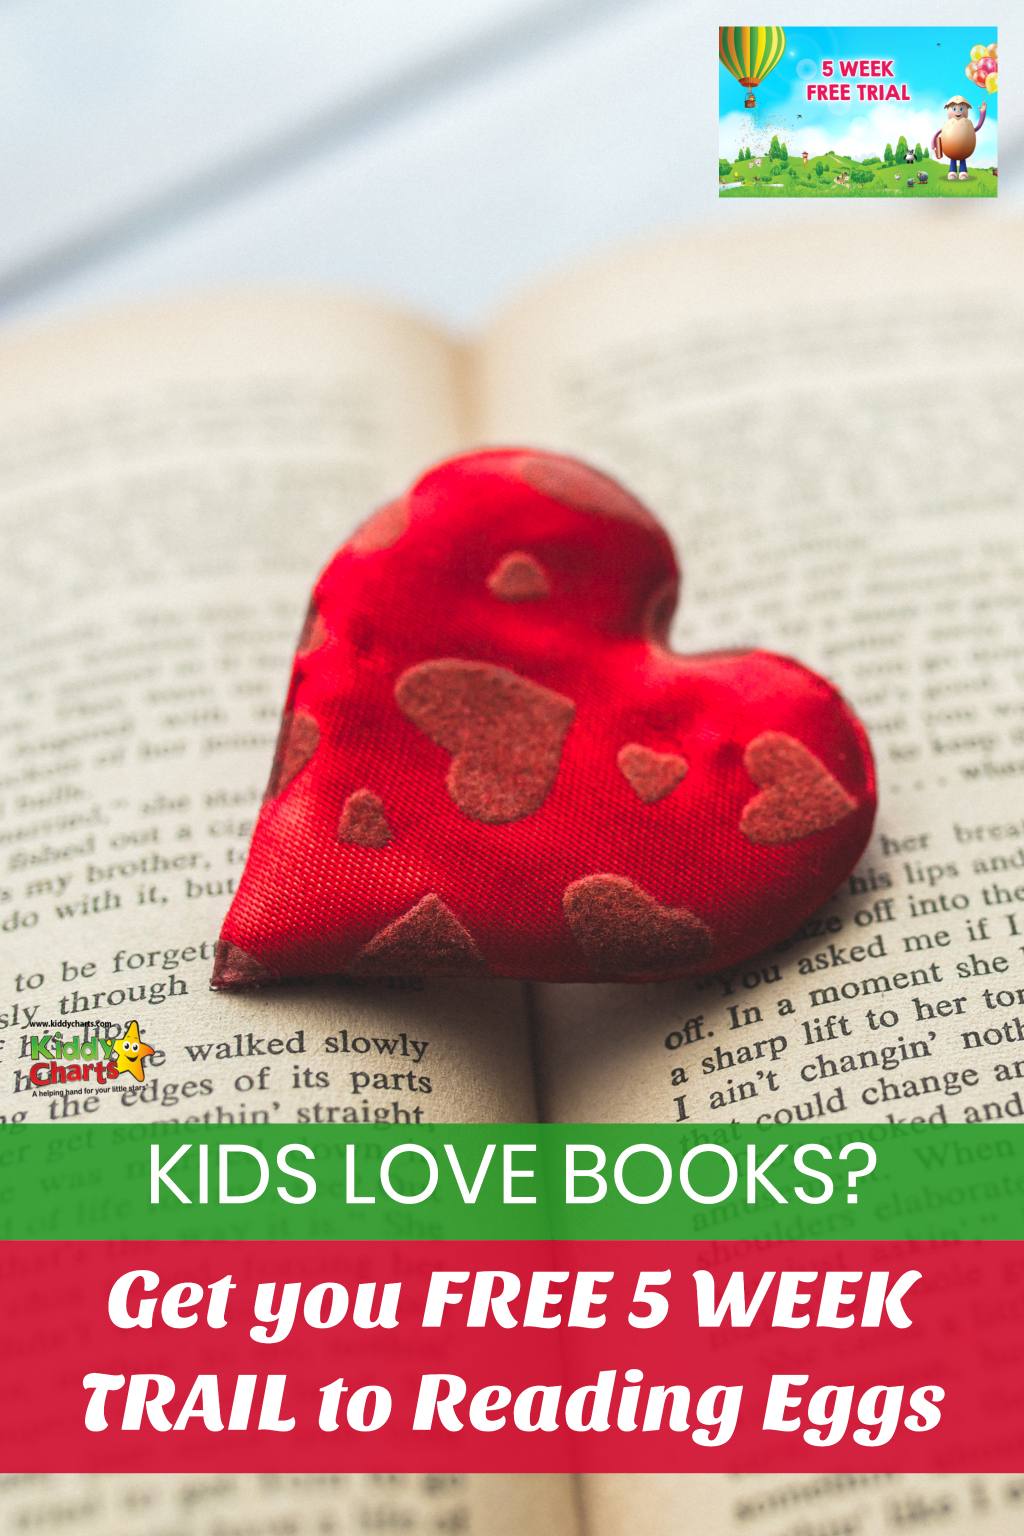 Back to school offrs for a 5 week reading eggs trial - go check it out and help your kids to learn to read.